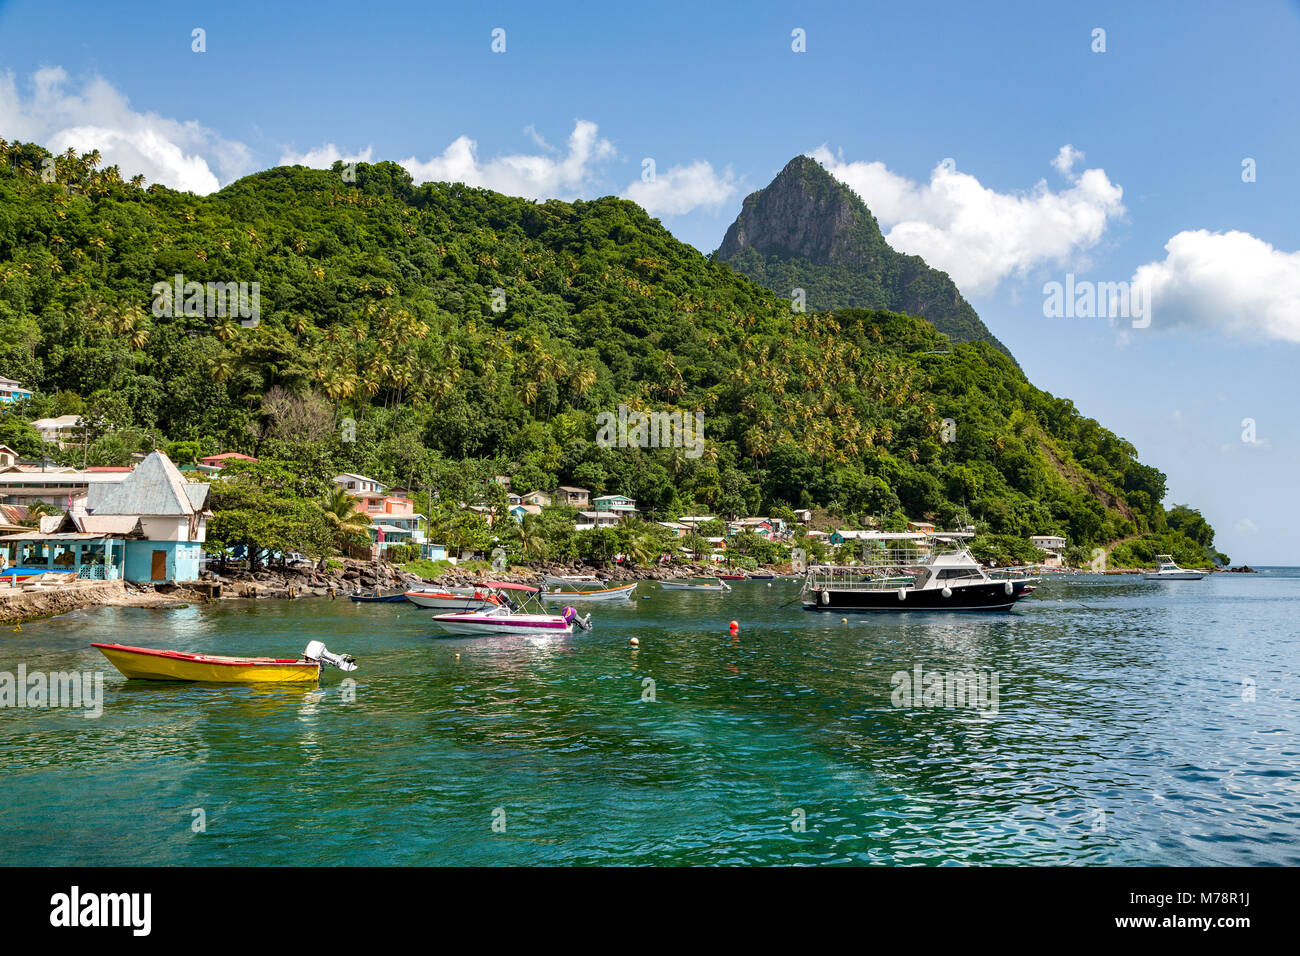 Petit Piton from Soufriere, St. Lucia, Windward Islands, West Indies Caribbean, Central America - Stock Image